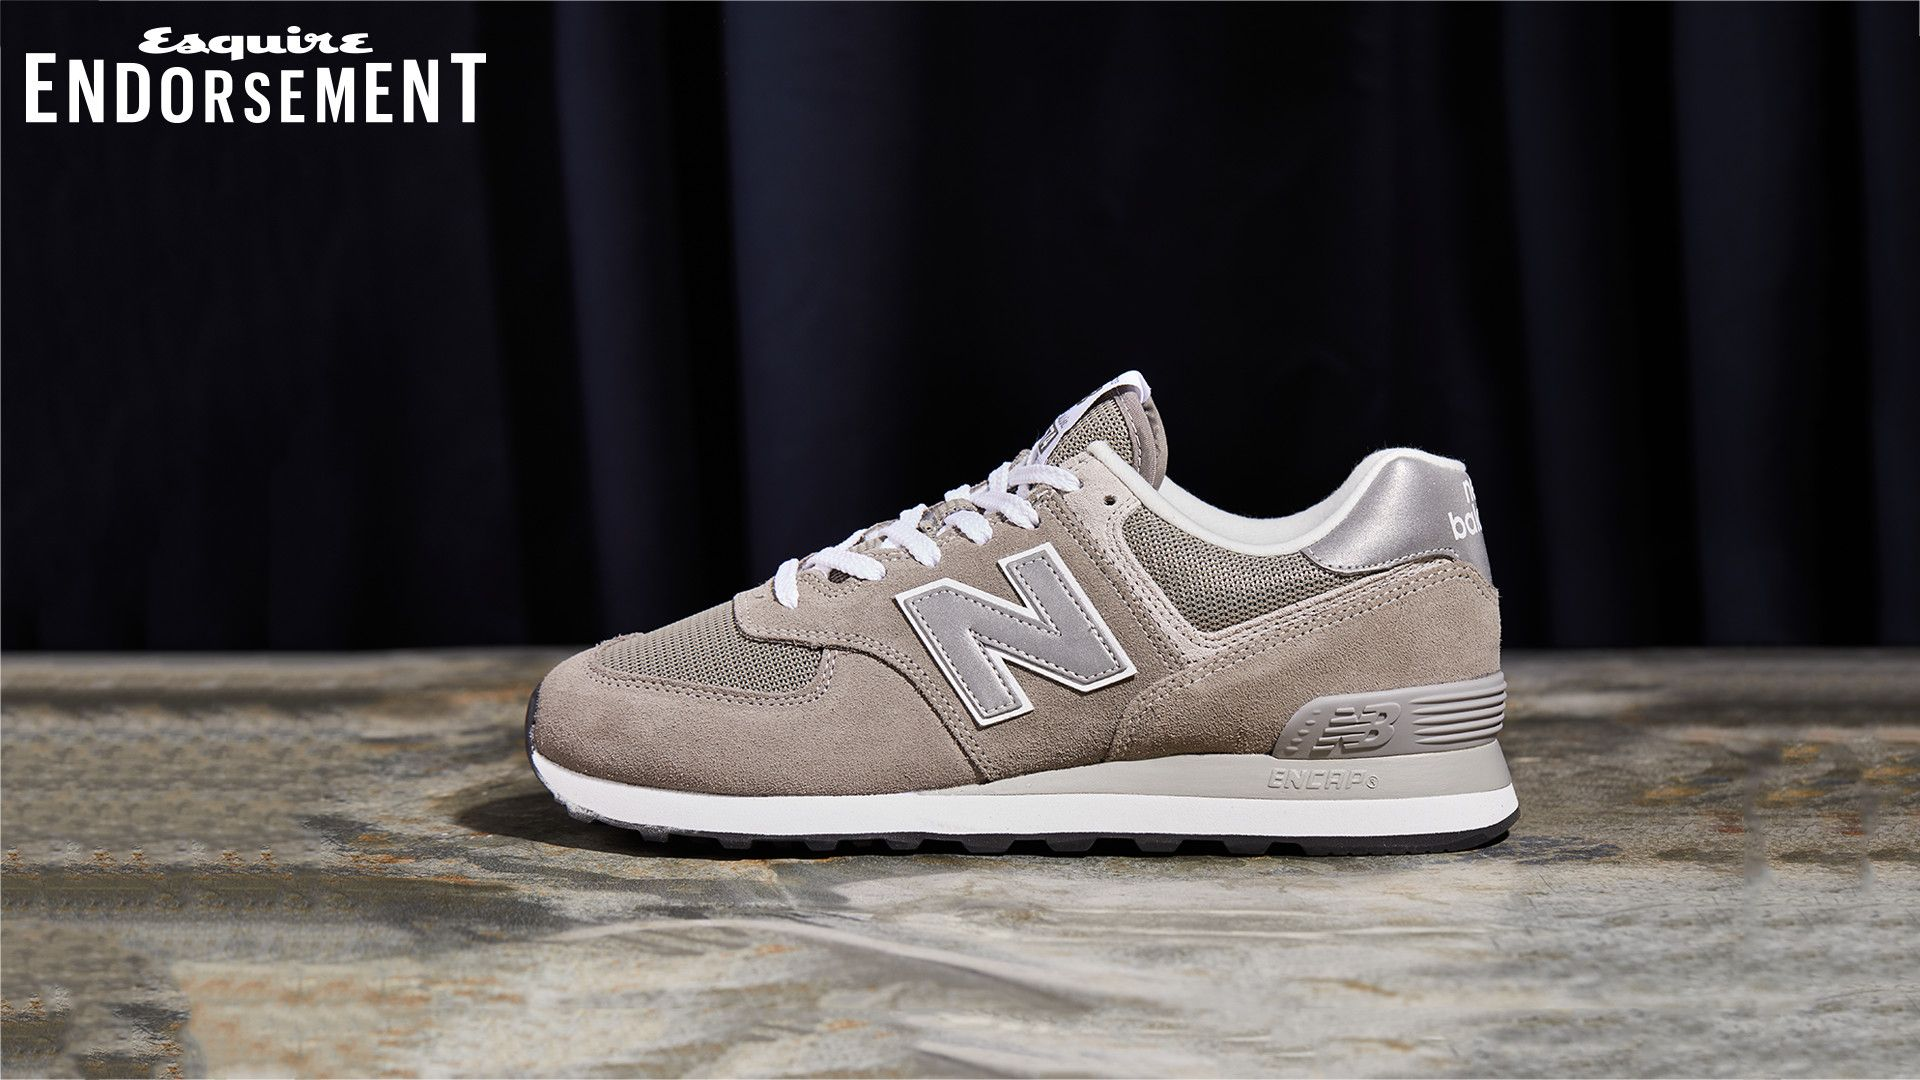 ebcddcd46f00 New Balance 574 Sneakers - The Sneaker That's So Anti-Fashion It's  Fashionable Again